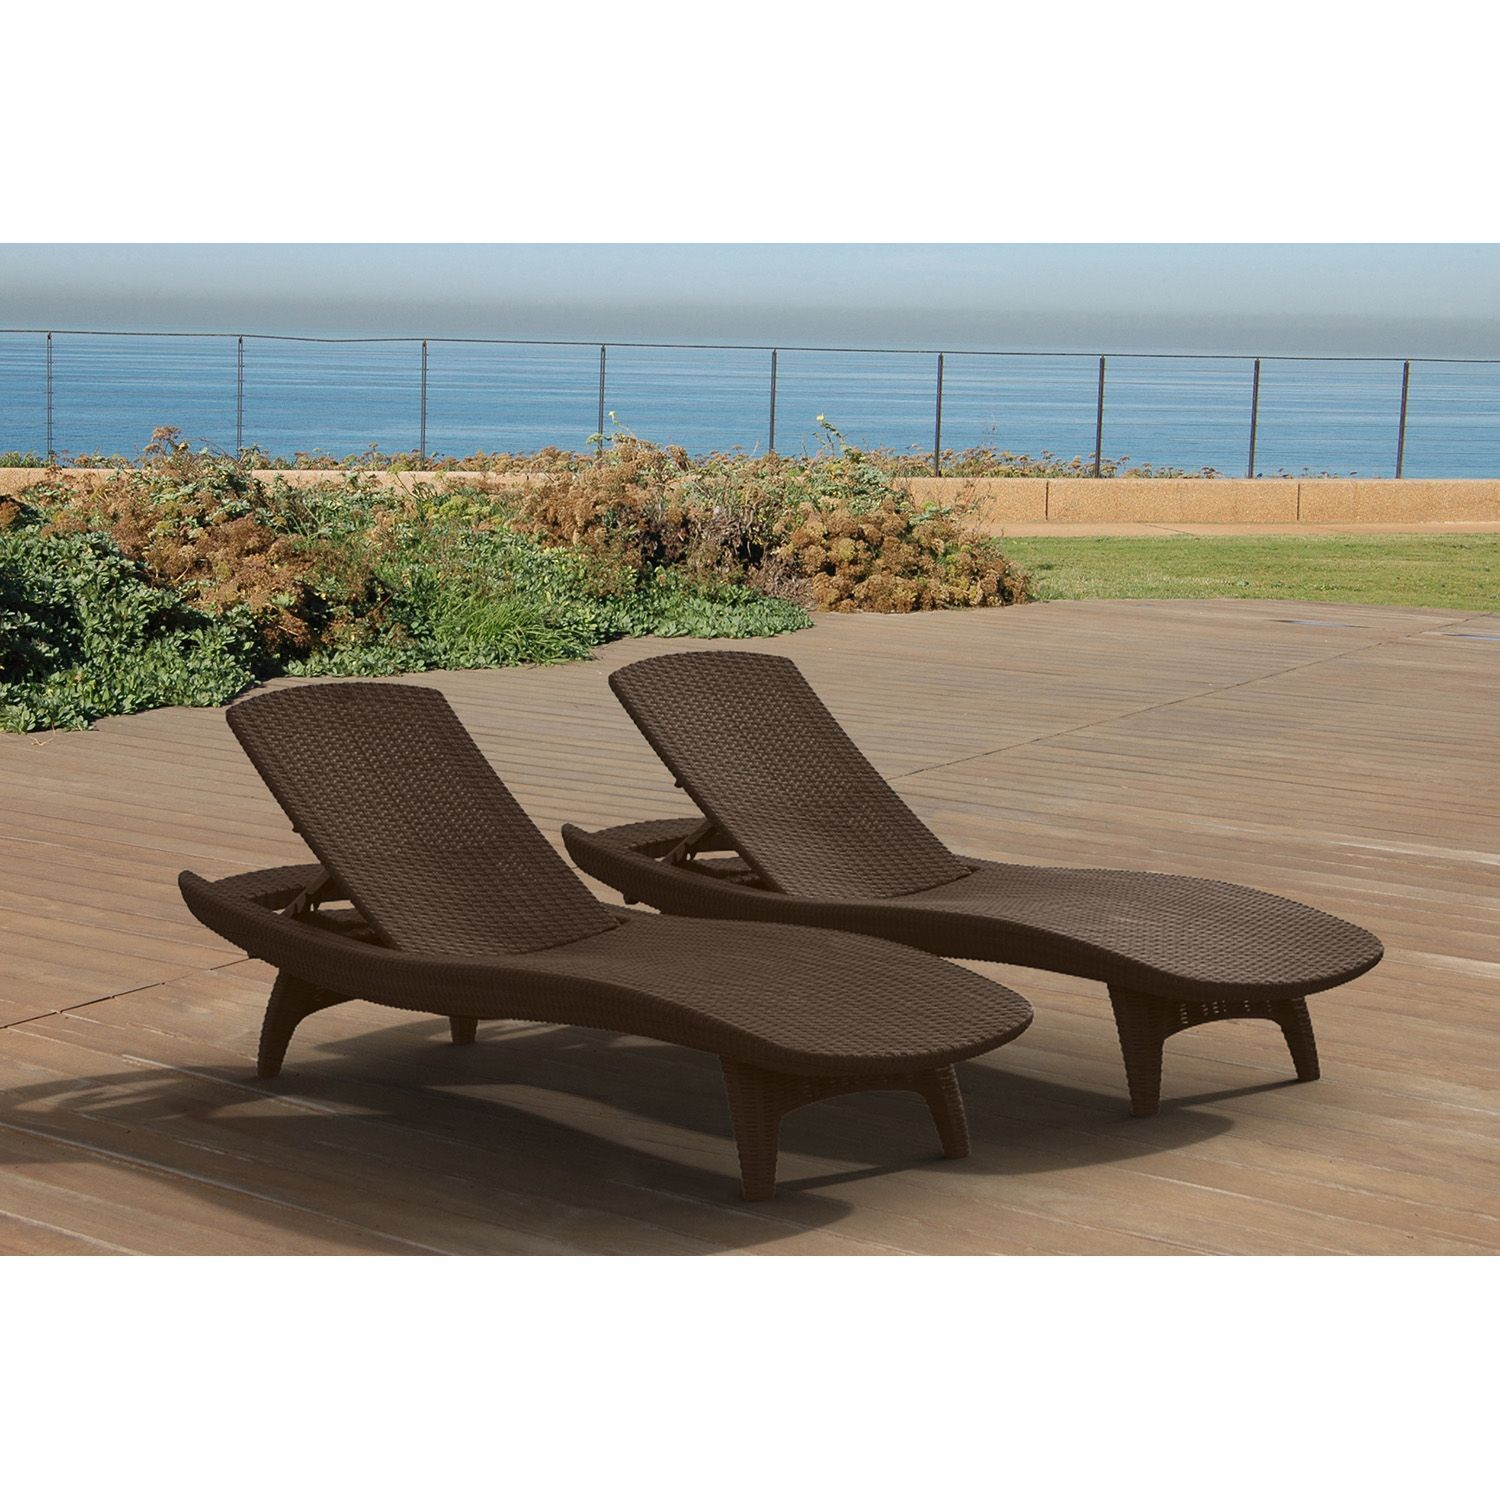 Keter 2 Pack All weather Rattan Chaise Lounger Various Colors